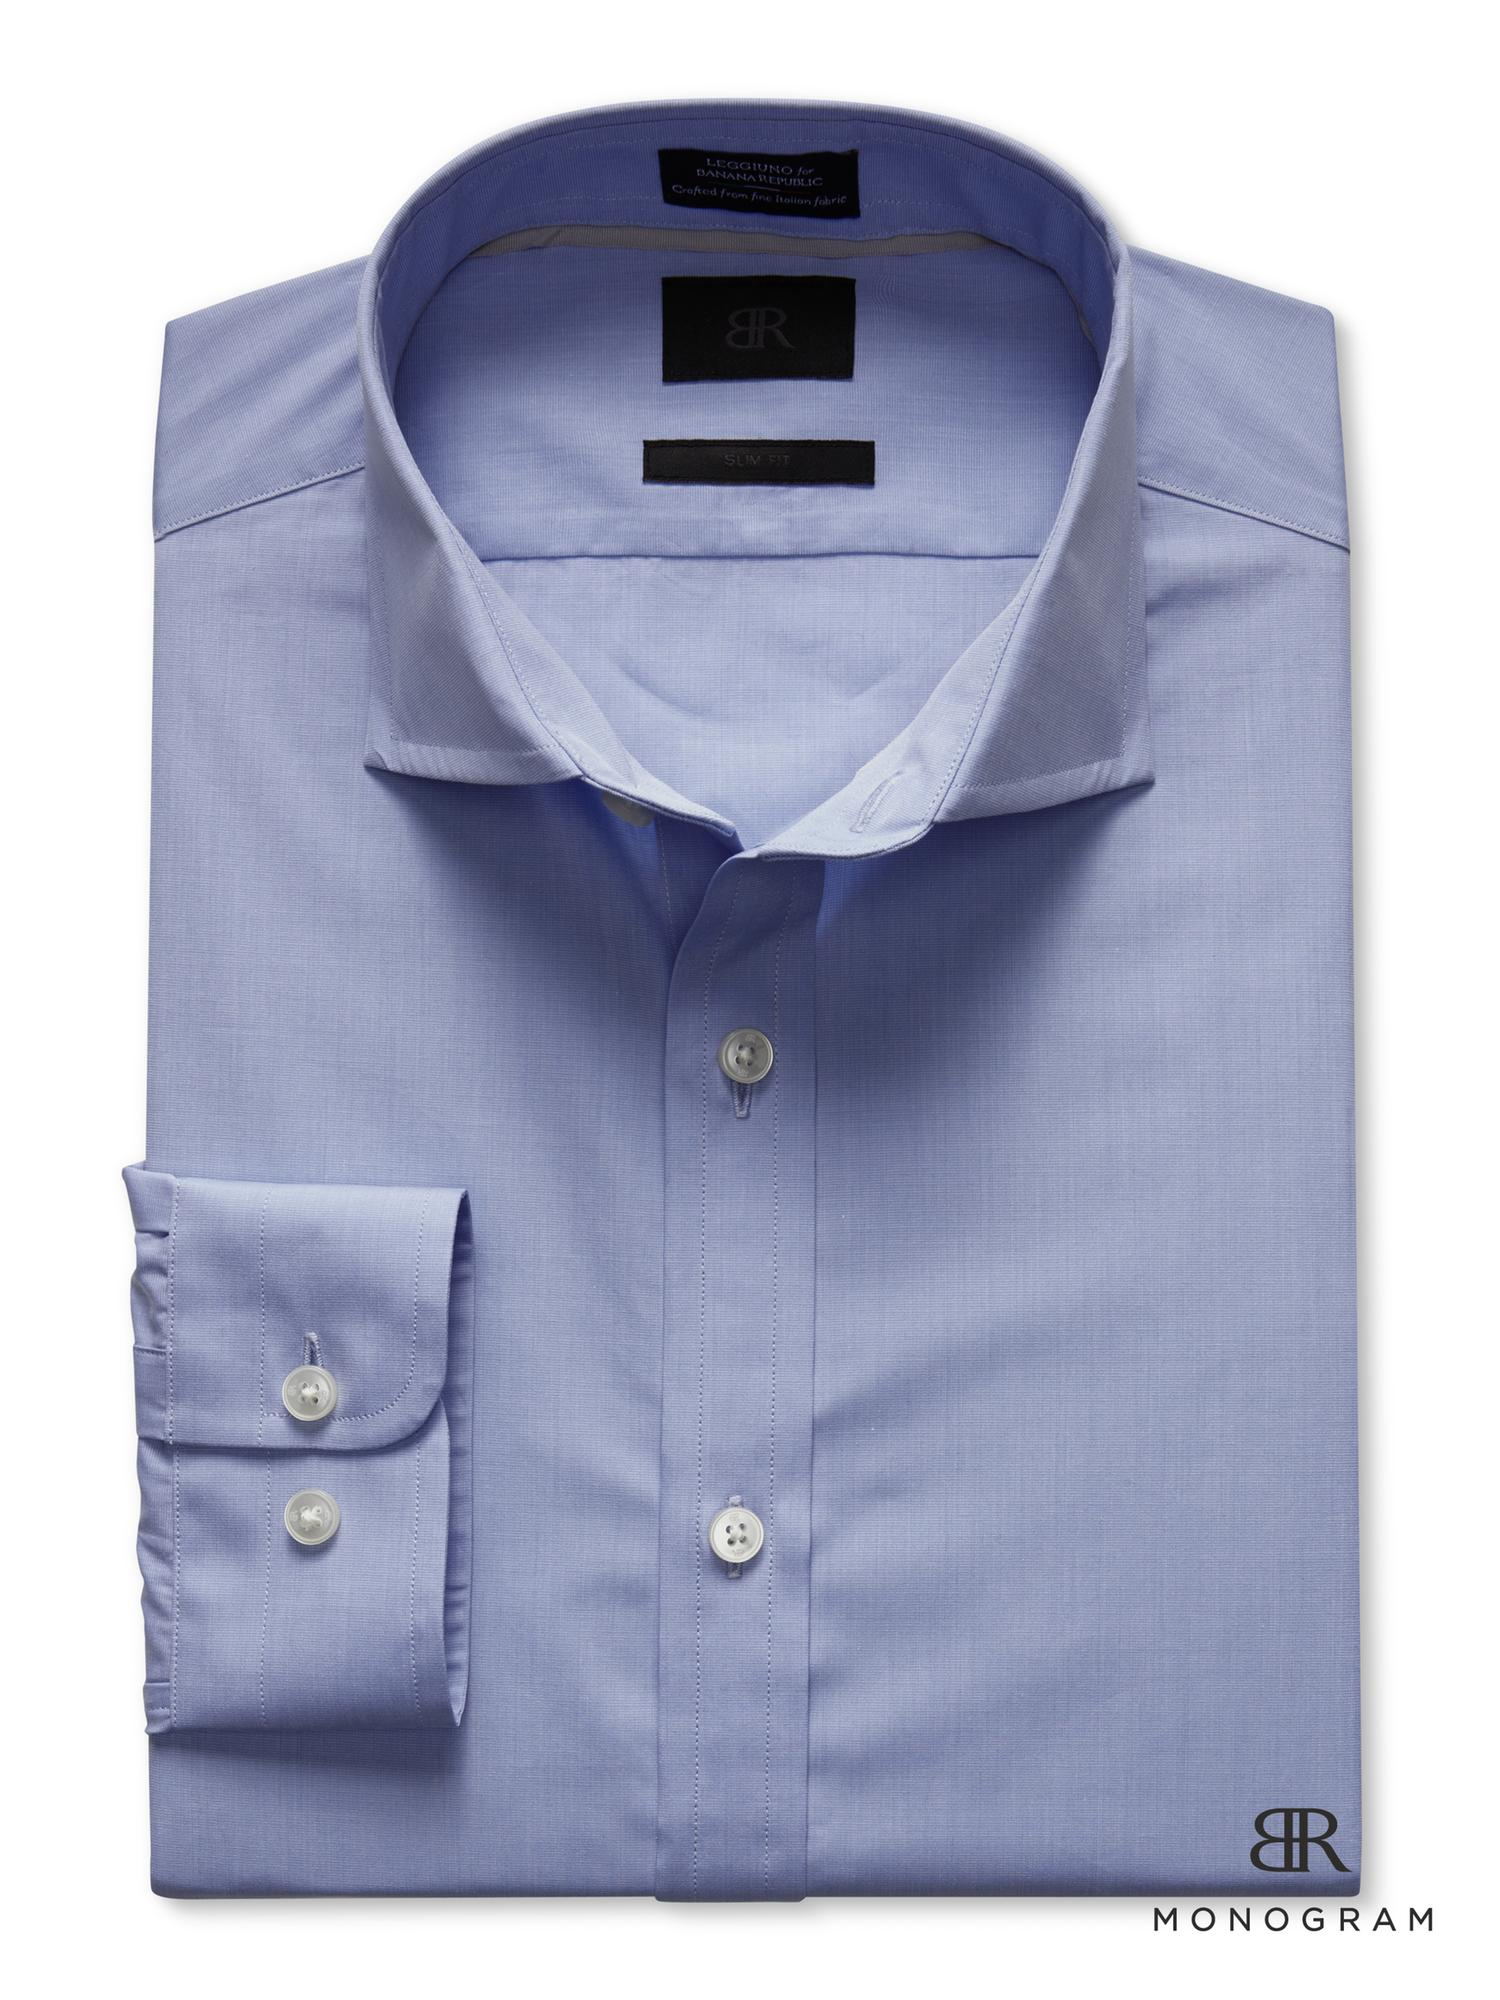 Banana Republic Br Monogram Solid Dress Shirt In Blue For